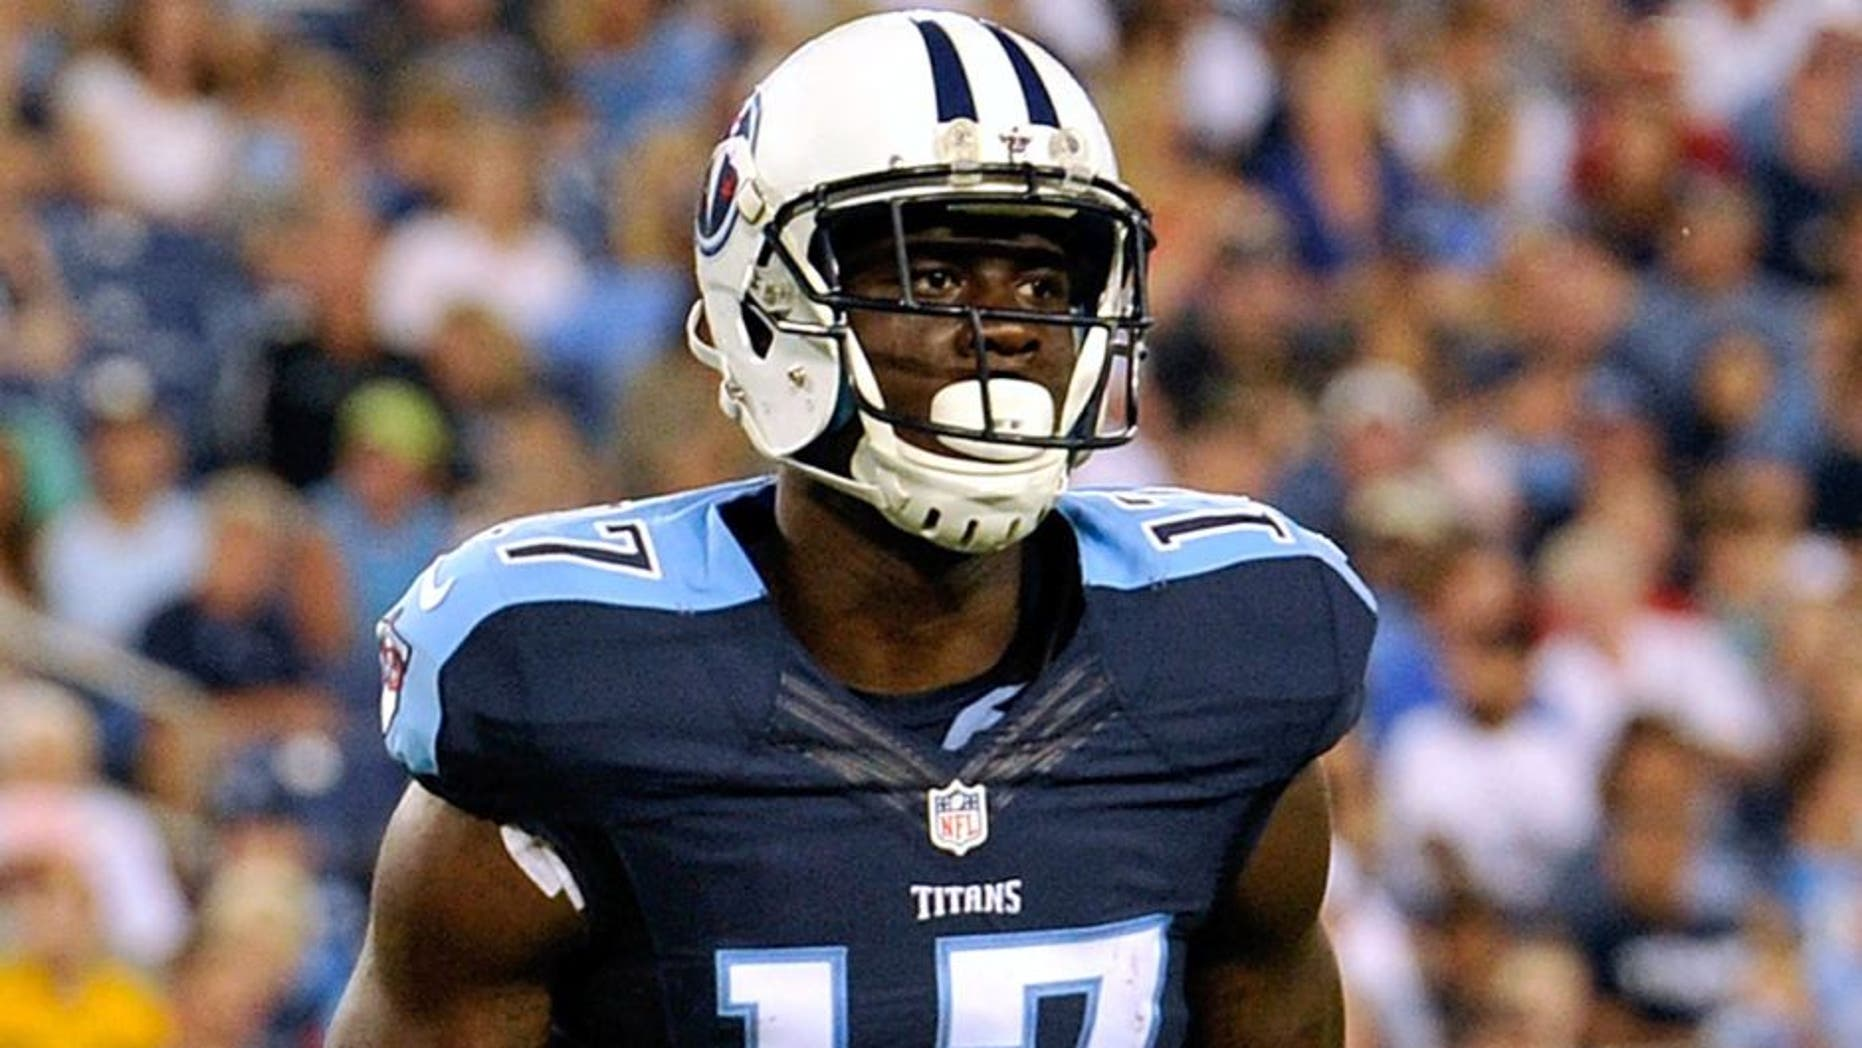 NASHVILLE, TN - AUGUST 23: Dorial Green-Beckham #17 of the Tennessee Titans plays during a pre-season game against the St. Louis Rams at Nissan Stadium on August 23, 2015 in Nashville, Tennessee. (Photo by Frederick Breedon/Getty Images)